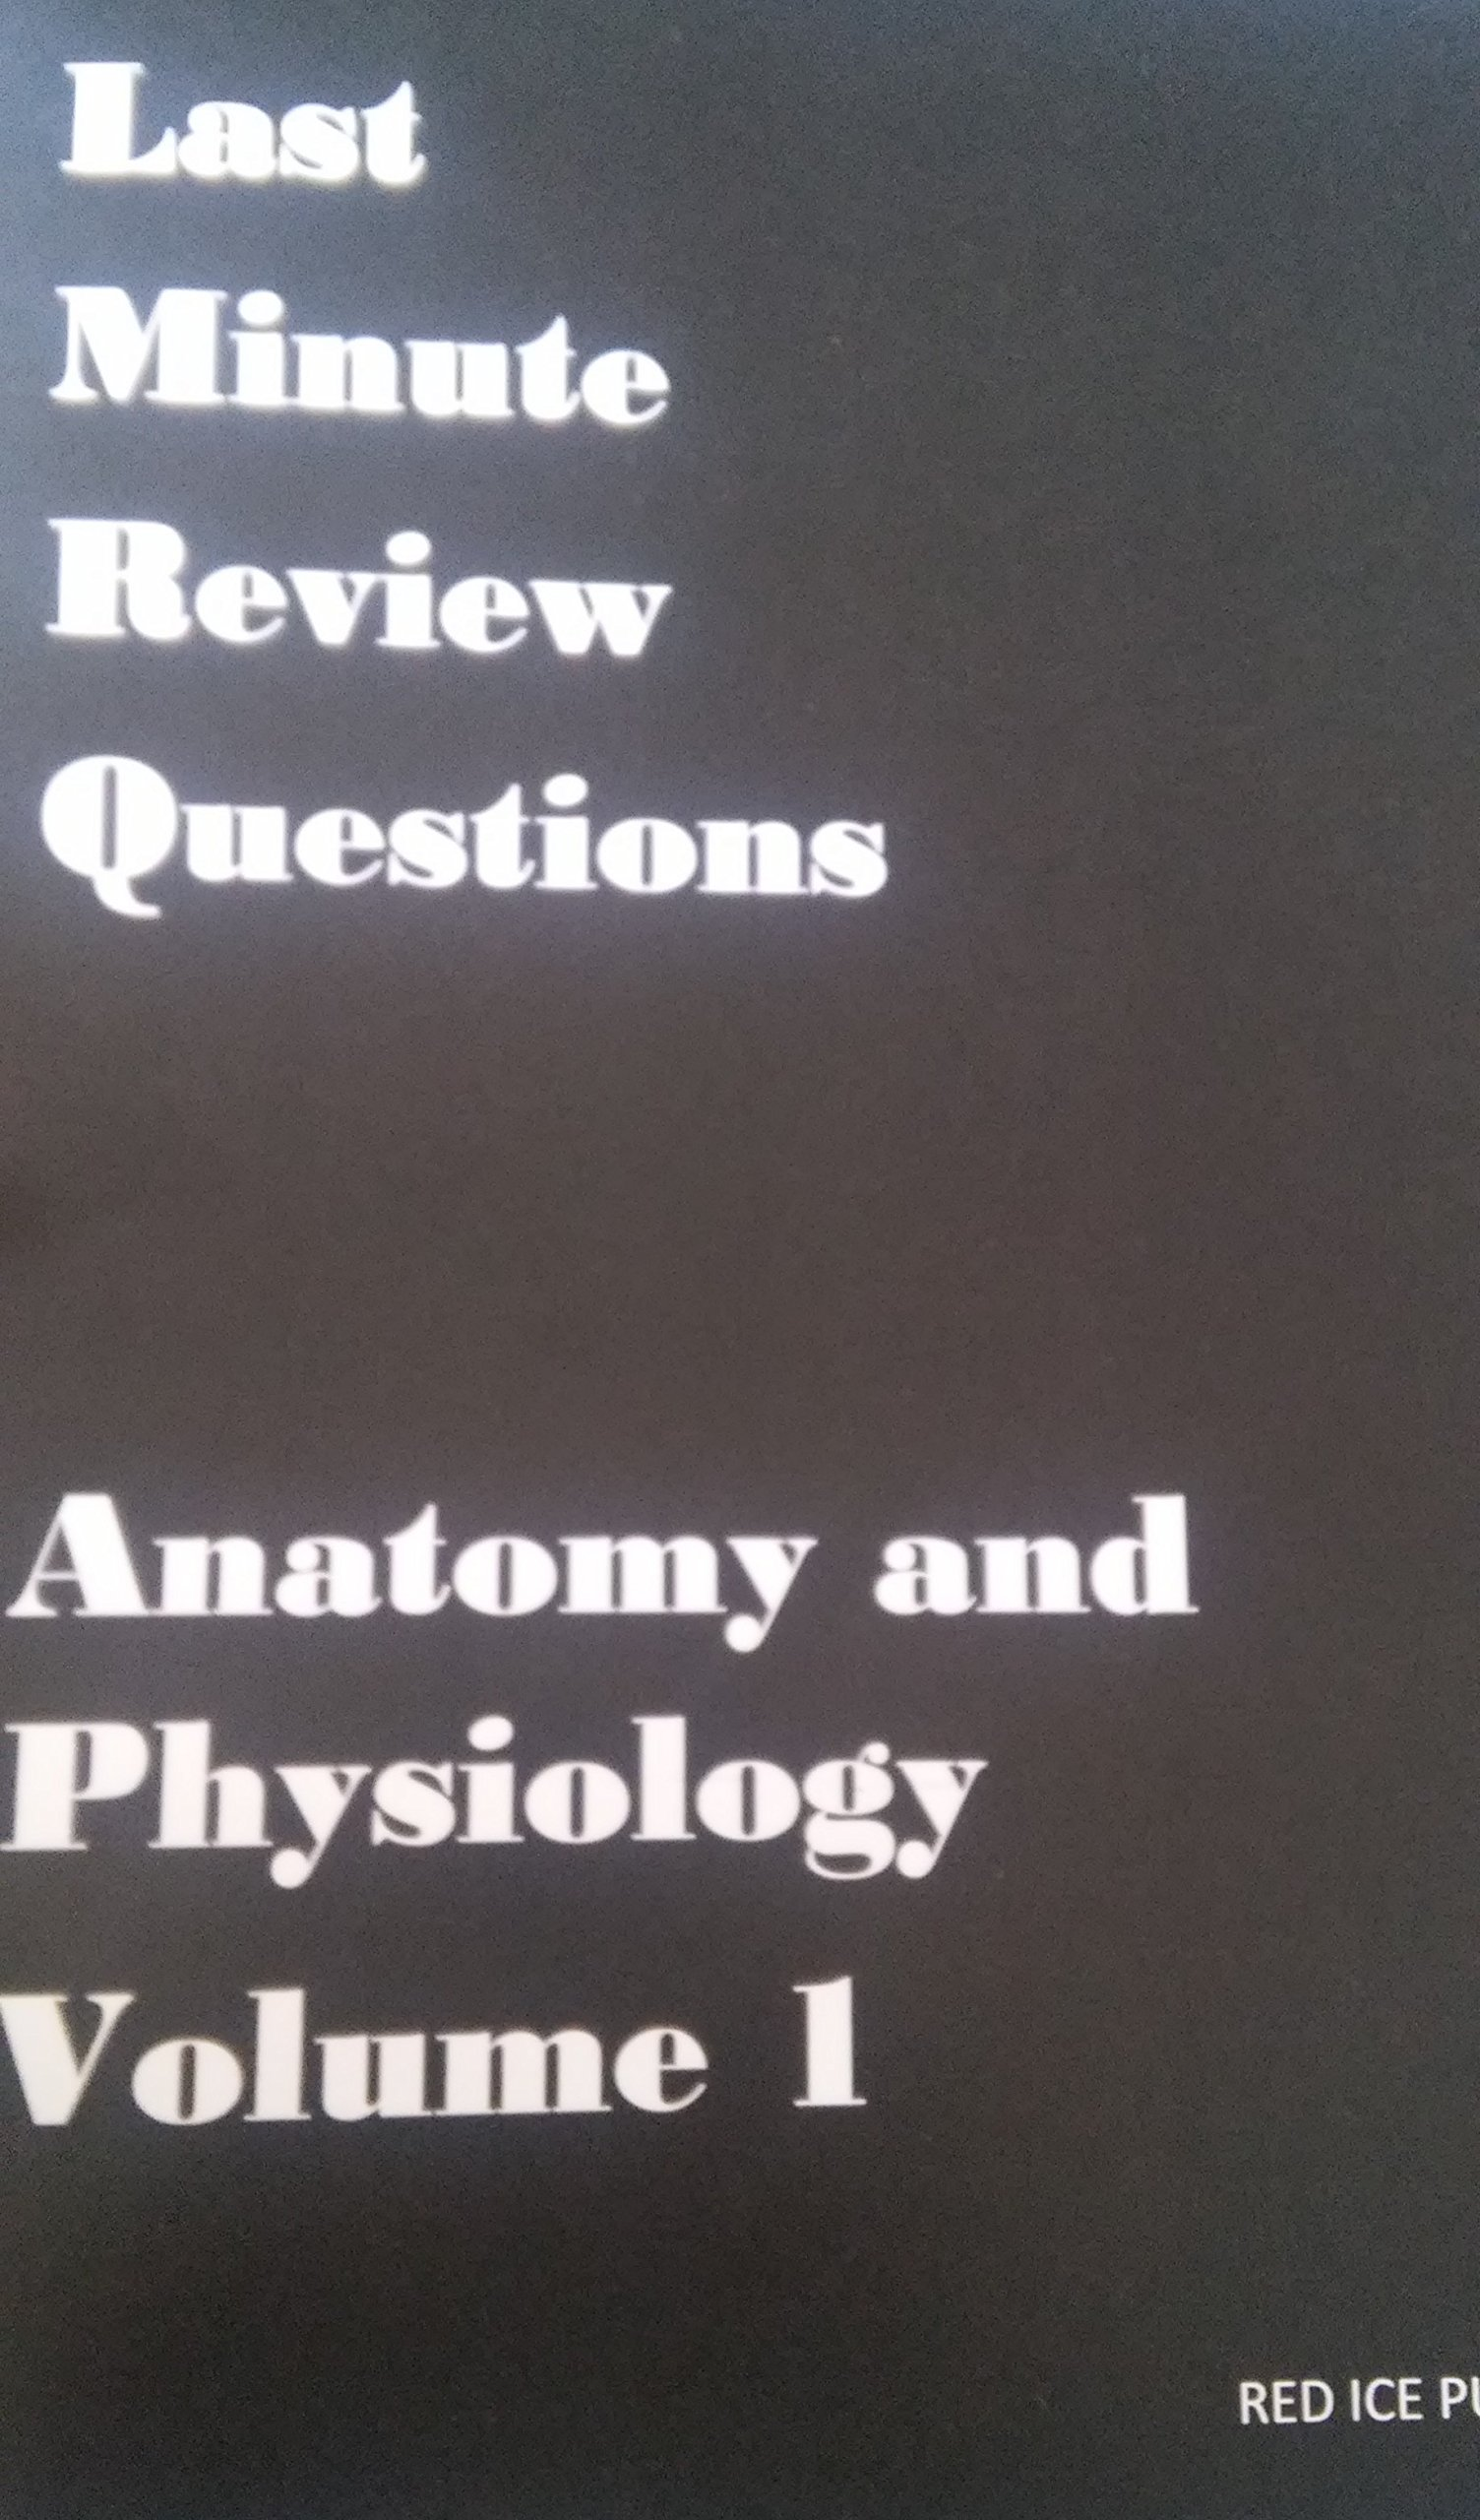 Last minute review questions Anatomy and Physiology vol 1: Amazon ...